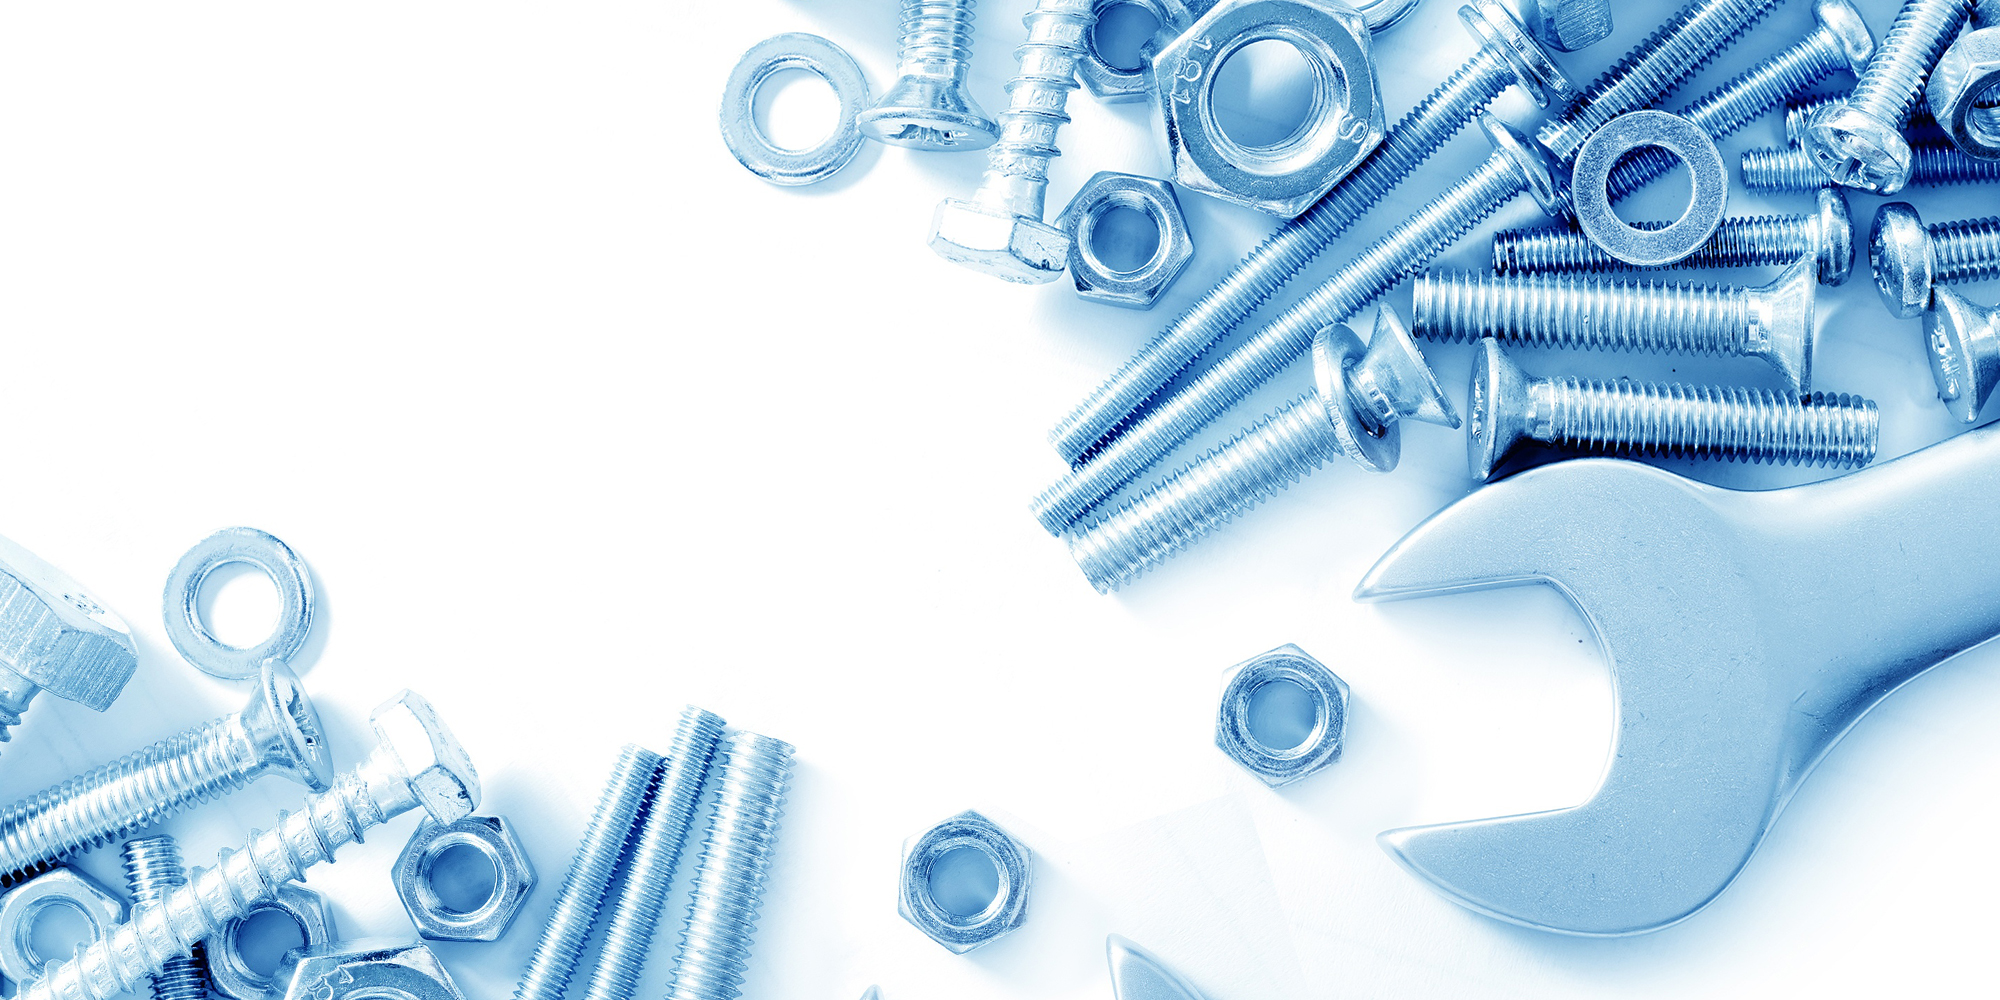 Professional fastener supplier in Taiwan